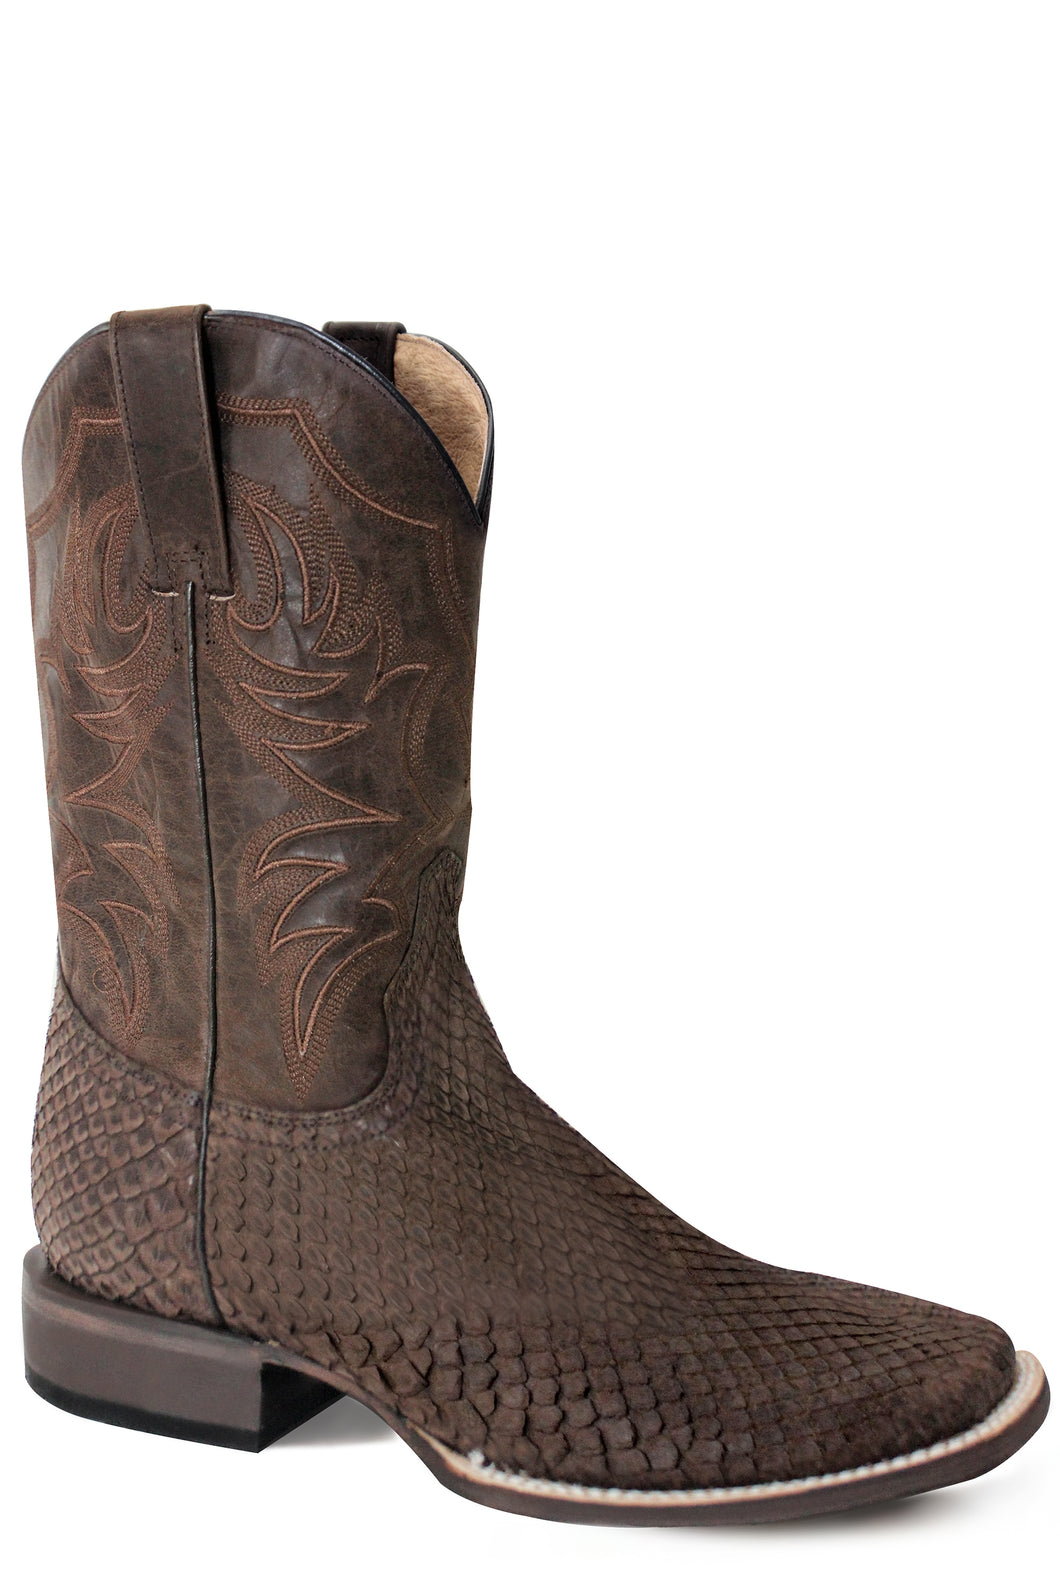 All In Boot Mens Boots Nubuck Brown Python Monster Vamp